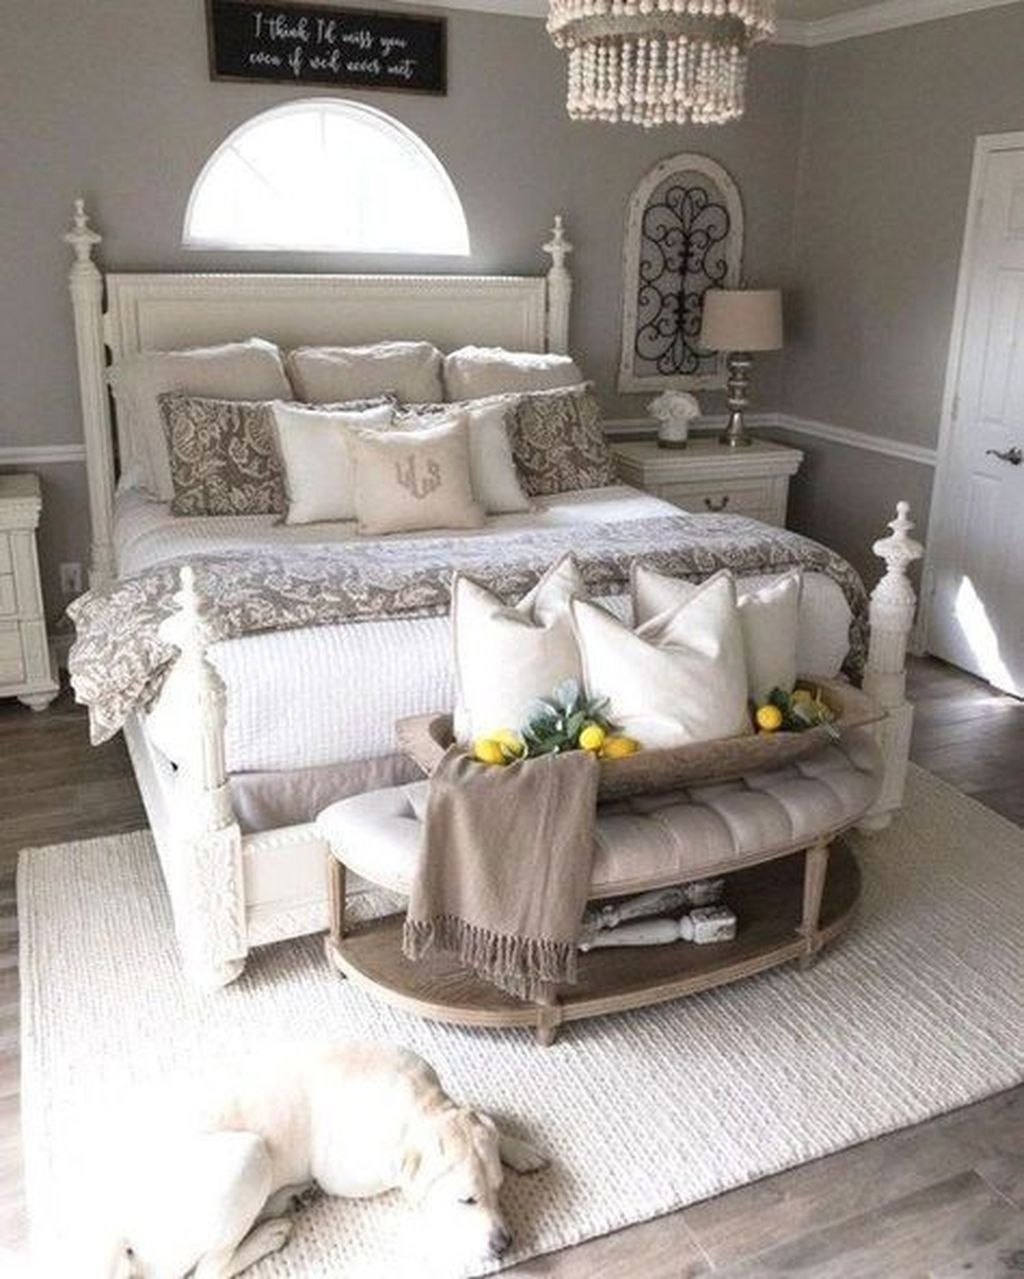 Cosy Bedroom Ideas For A Restful Retreat: 30+ Elegant Farmhouse Decor Ideas For Bedroom